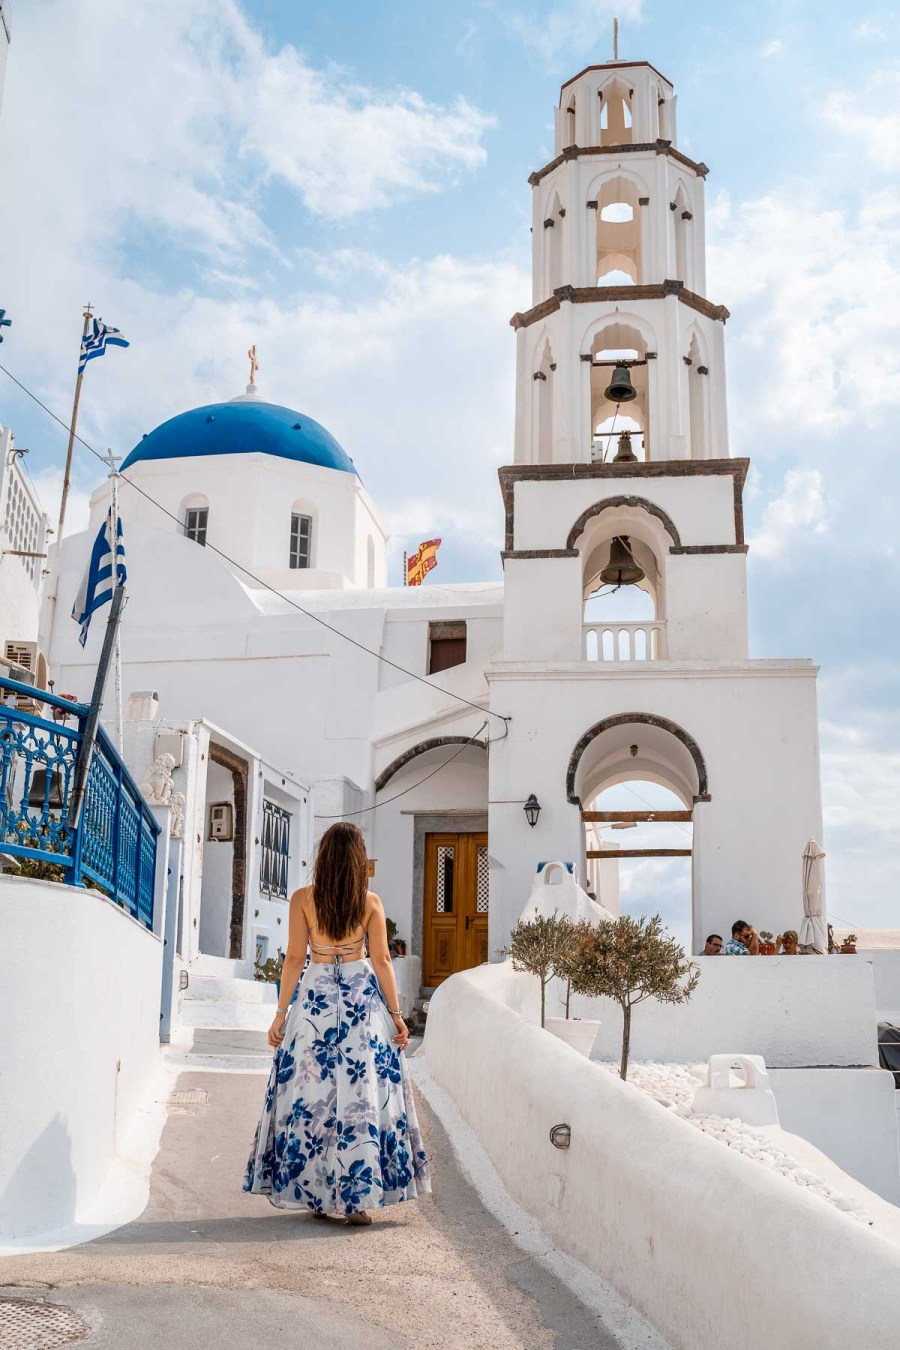 Girl in a blue floral dress standing in front of a church in Pyrgos, Santorini